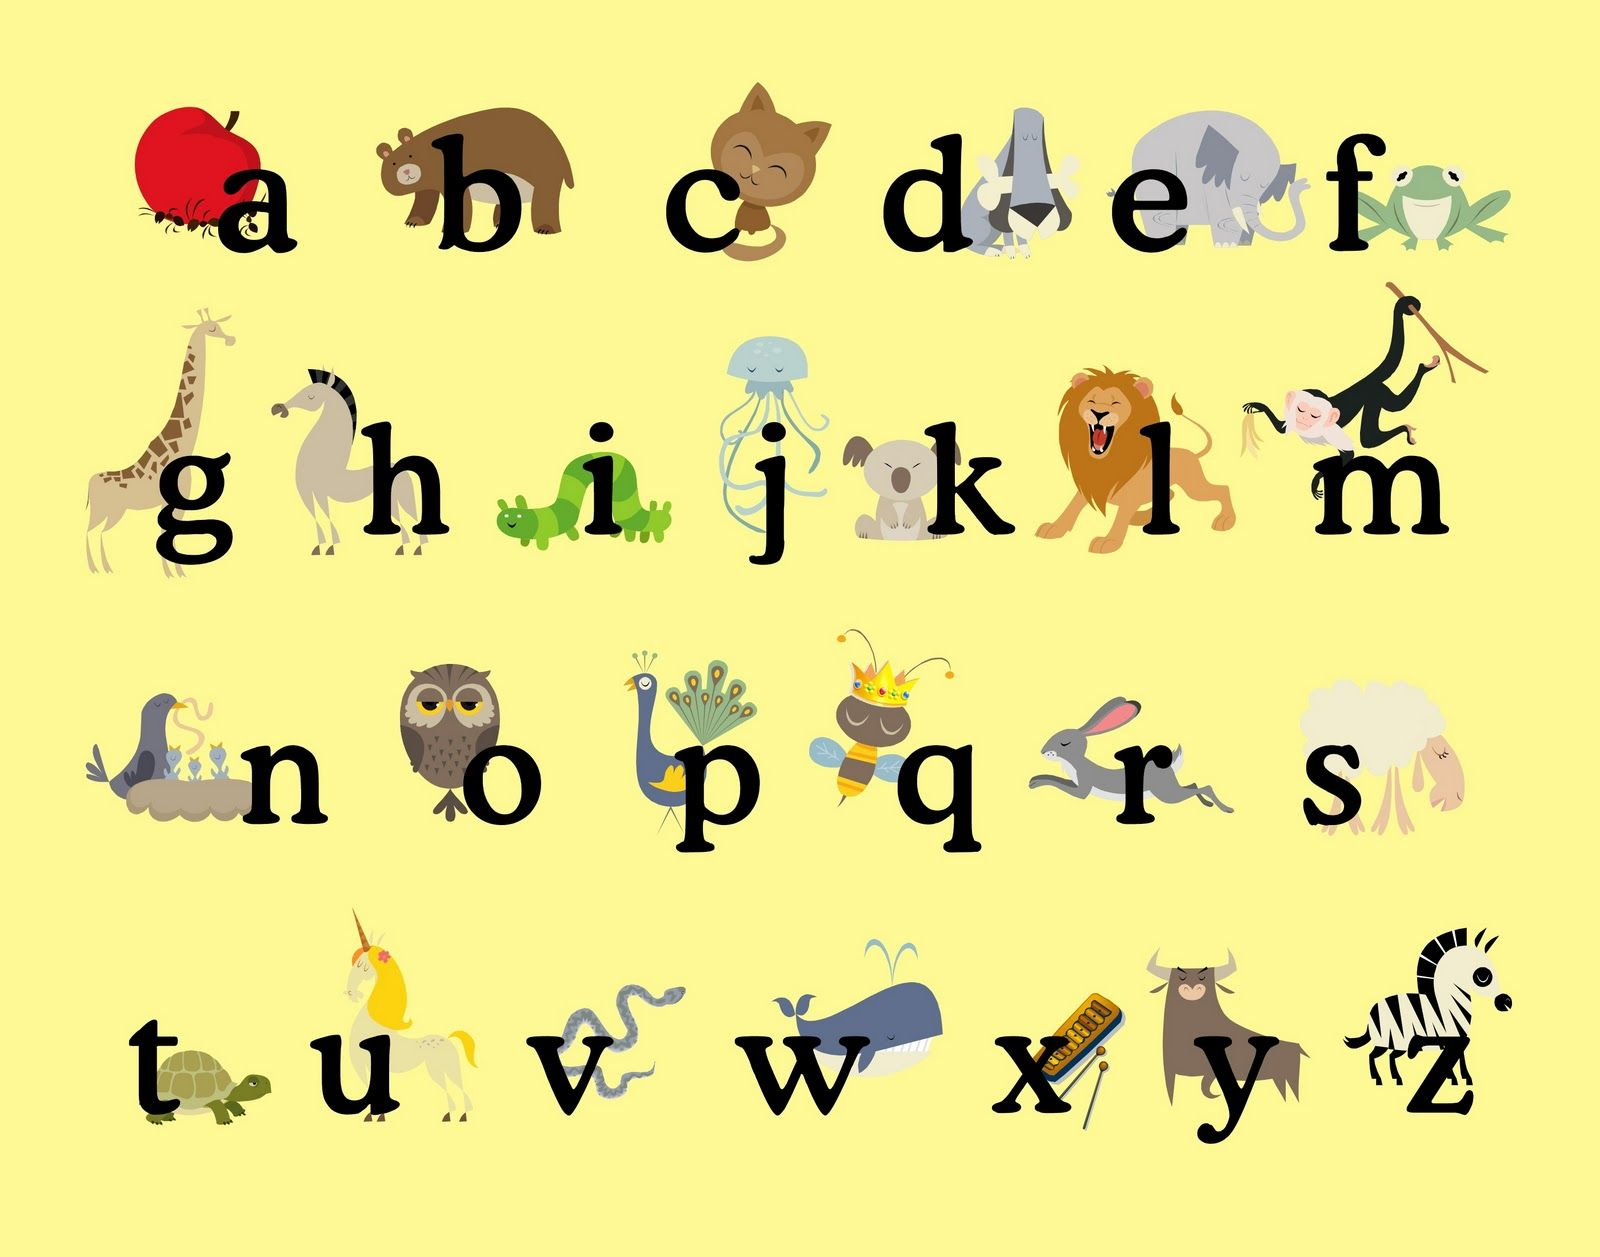 Worksheets Alphabet For Preschoolers printable color poster for preschool alphabet from sprik space